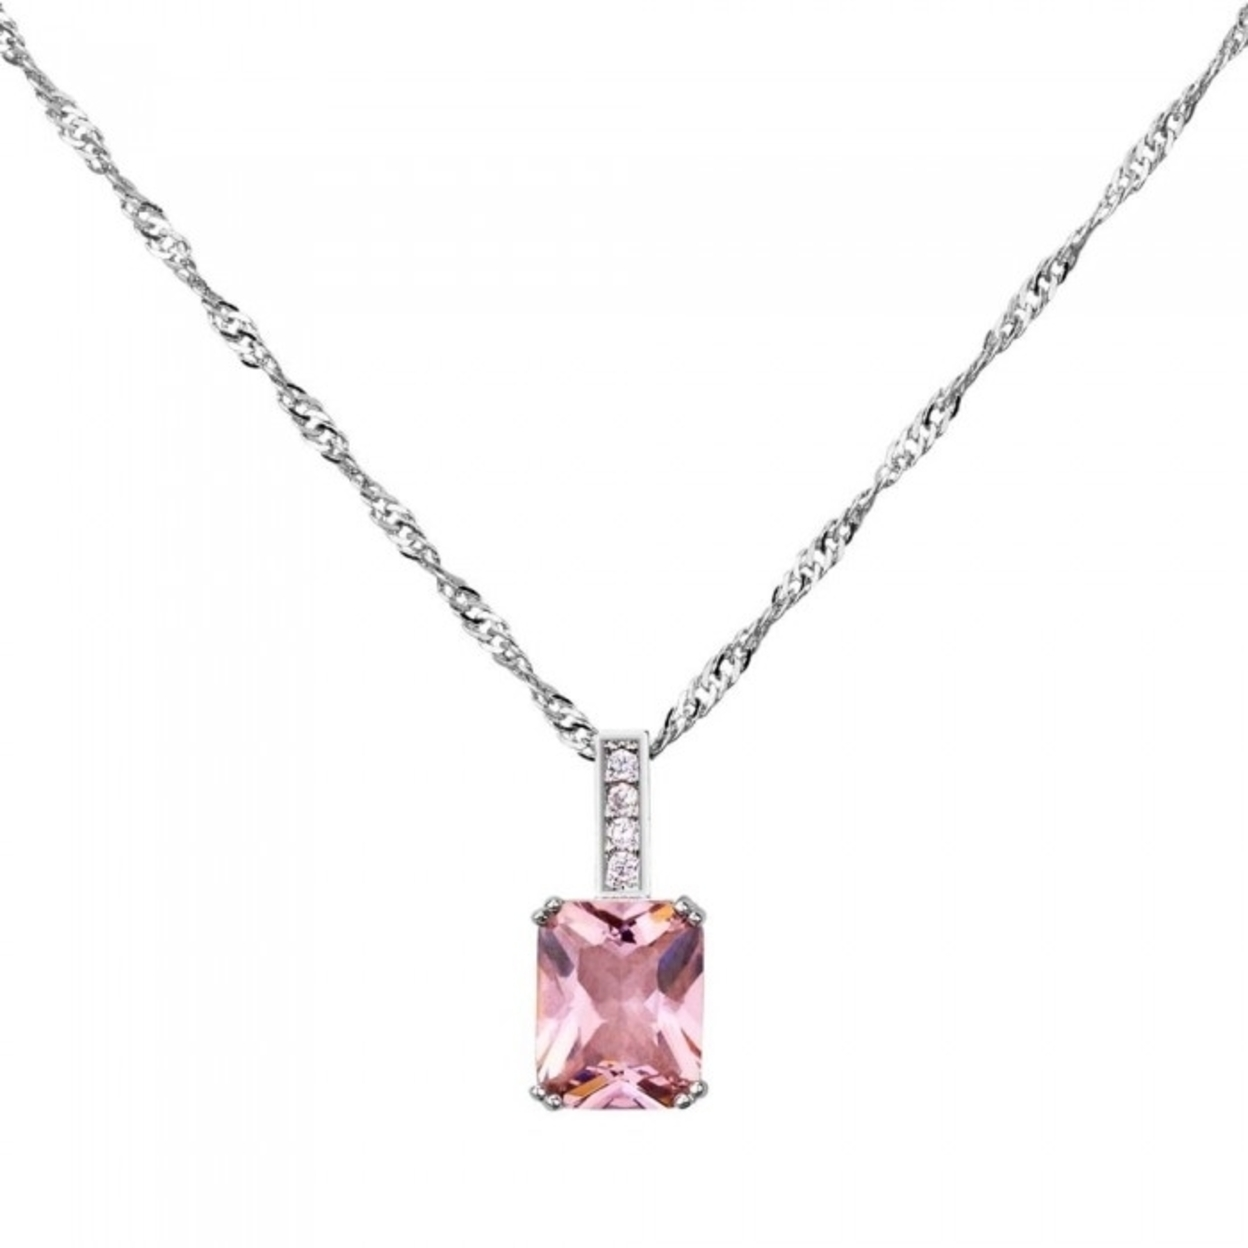 2.33 Carat Emerald Cut Pink Sapphire 10k White Gold Filled Pendant